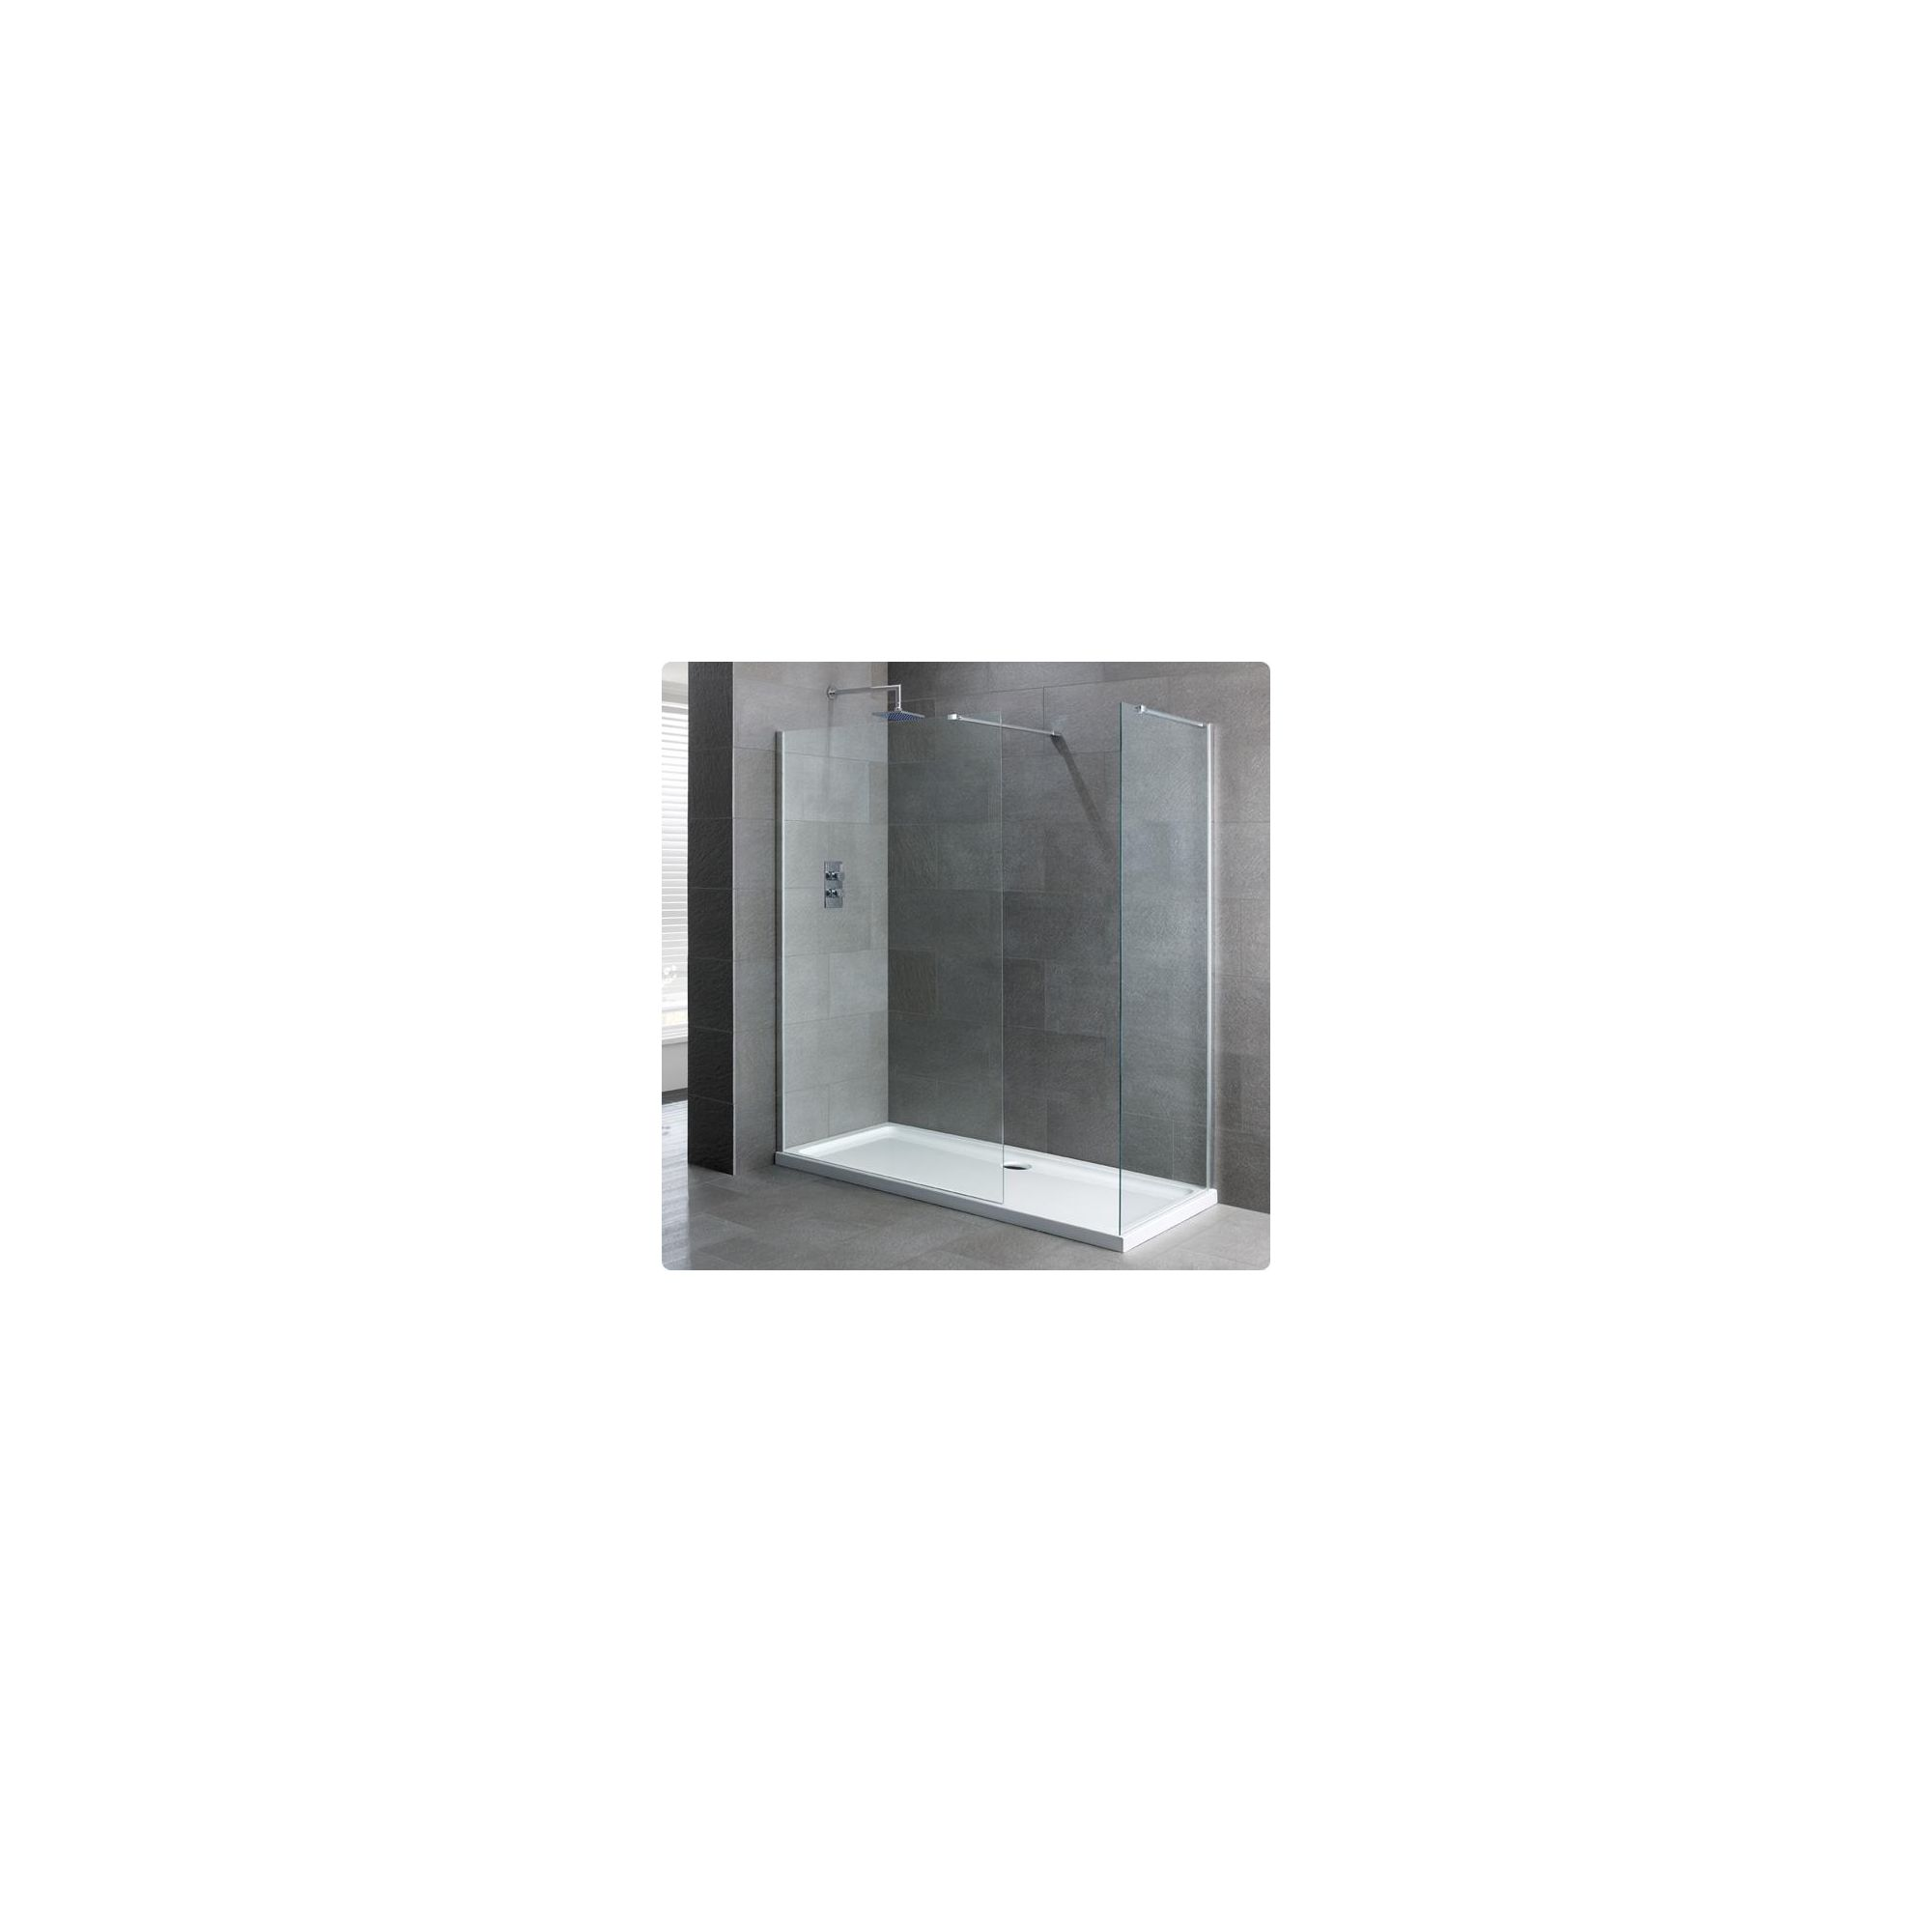 Duchy Select Silver Walk-In Shower Enclosure 1200mm x 900mm, Standard Tray, 6mm Glass at Tesco Direct